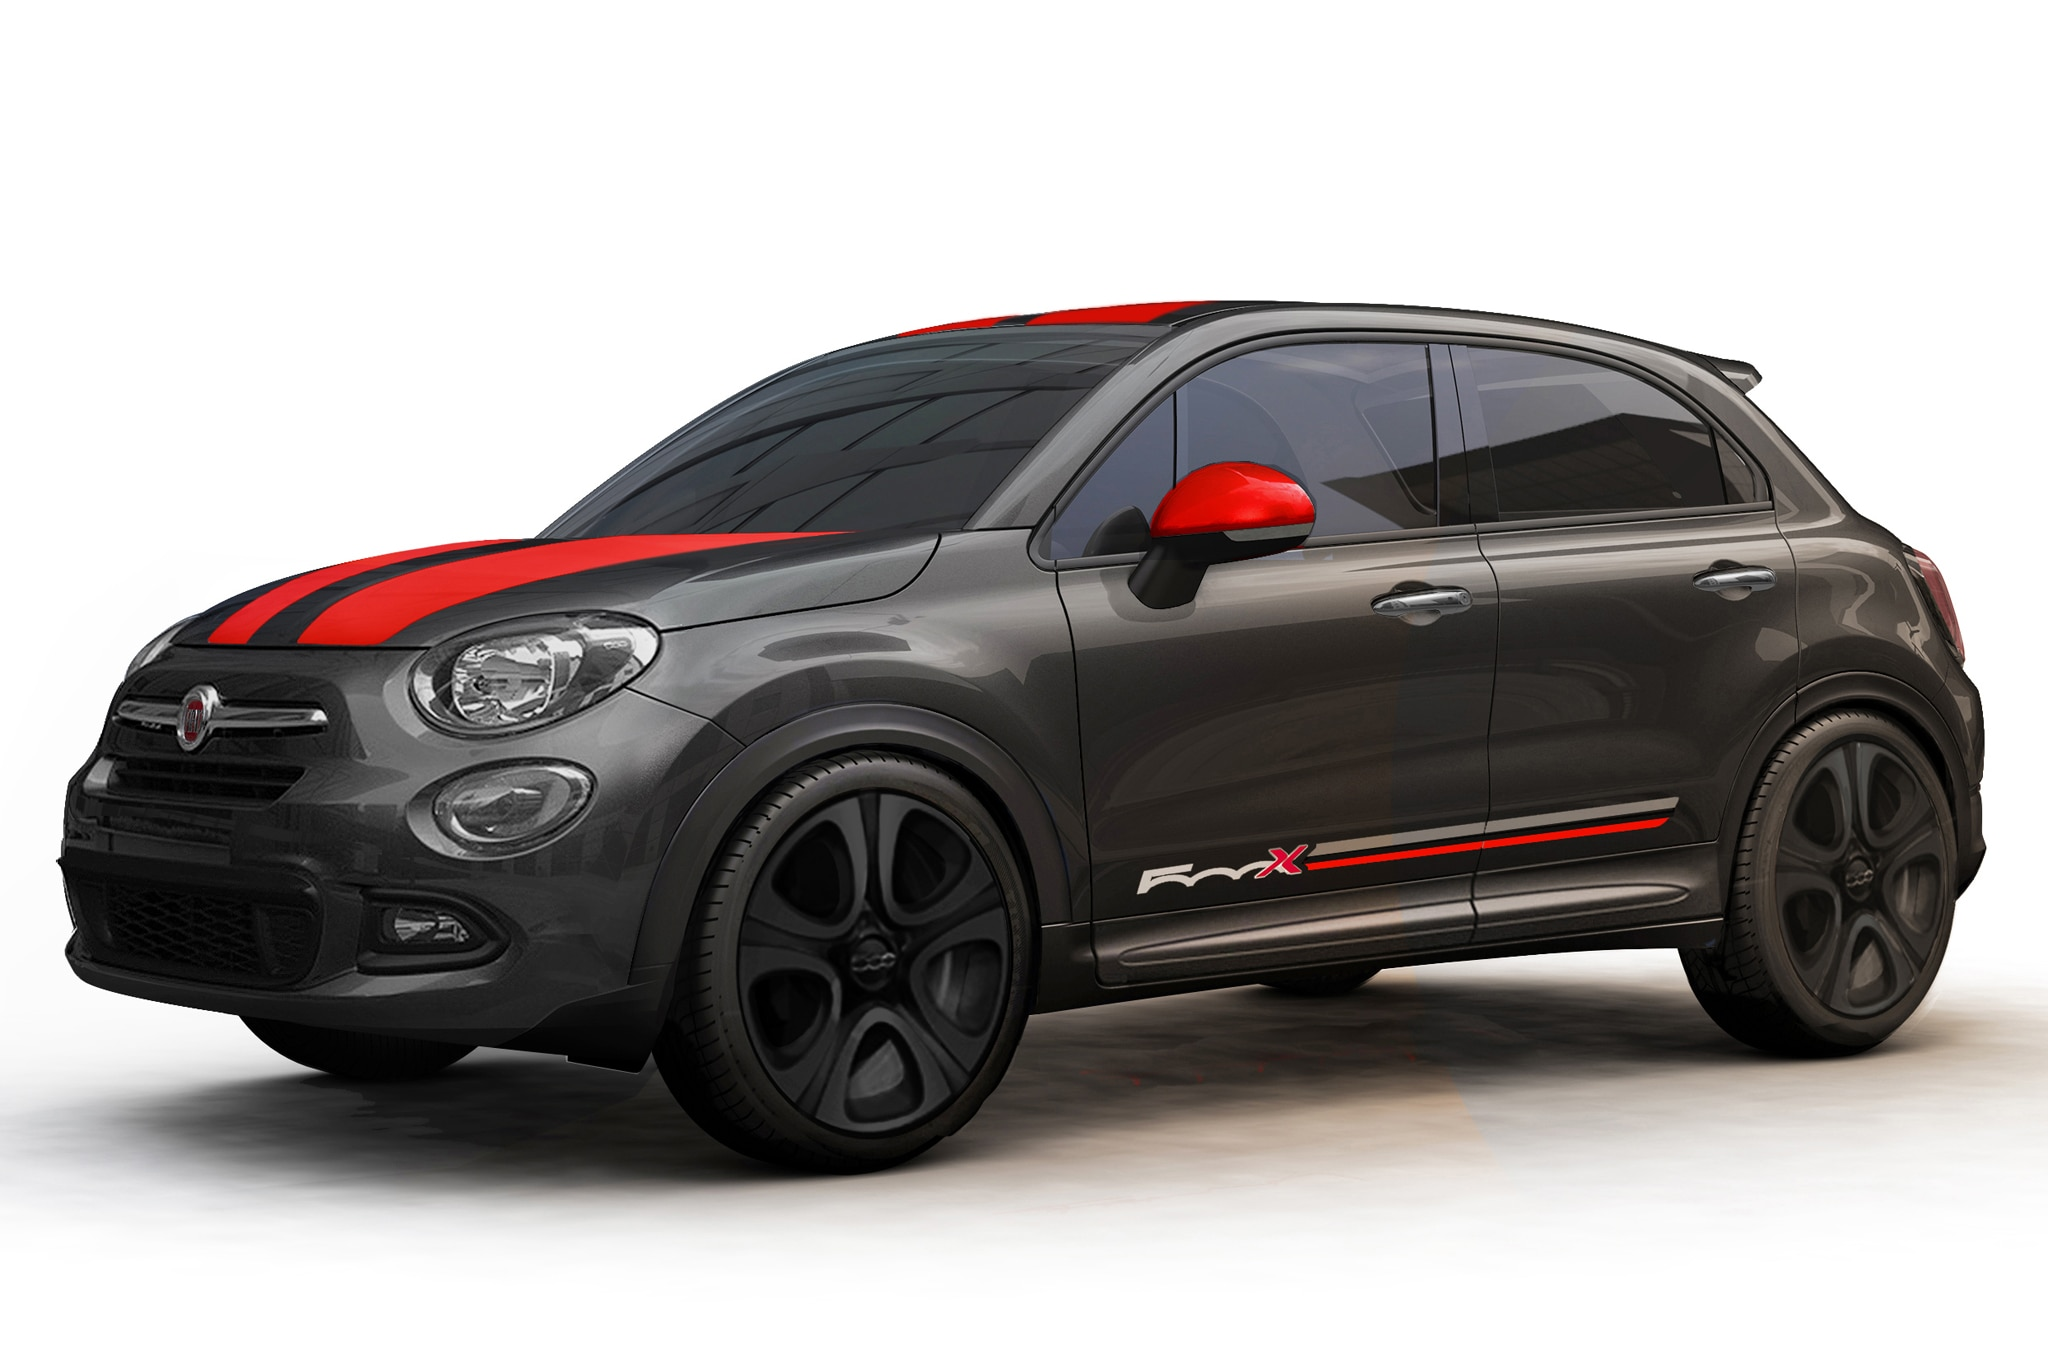 Mopar Ize The 2016 Fiat 500x With Special Accessories